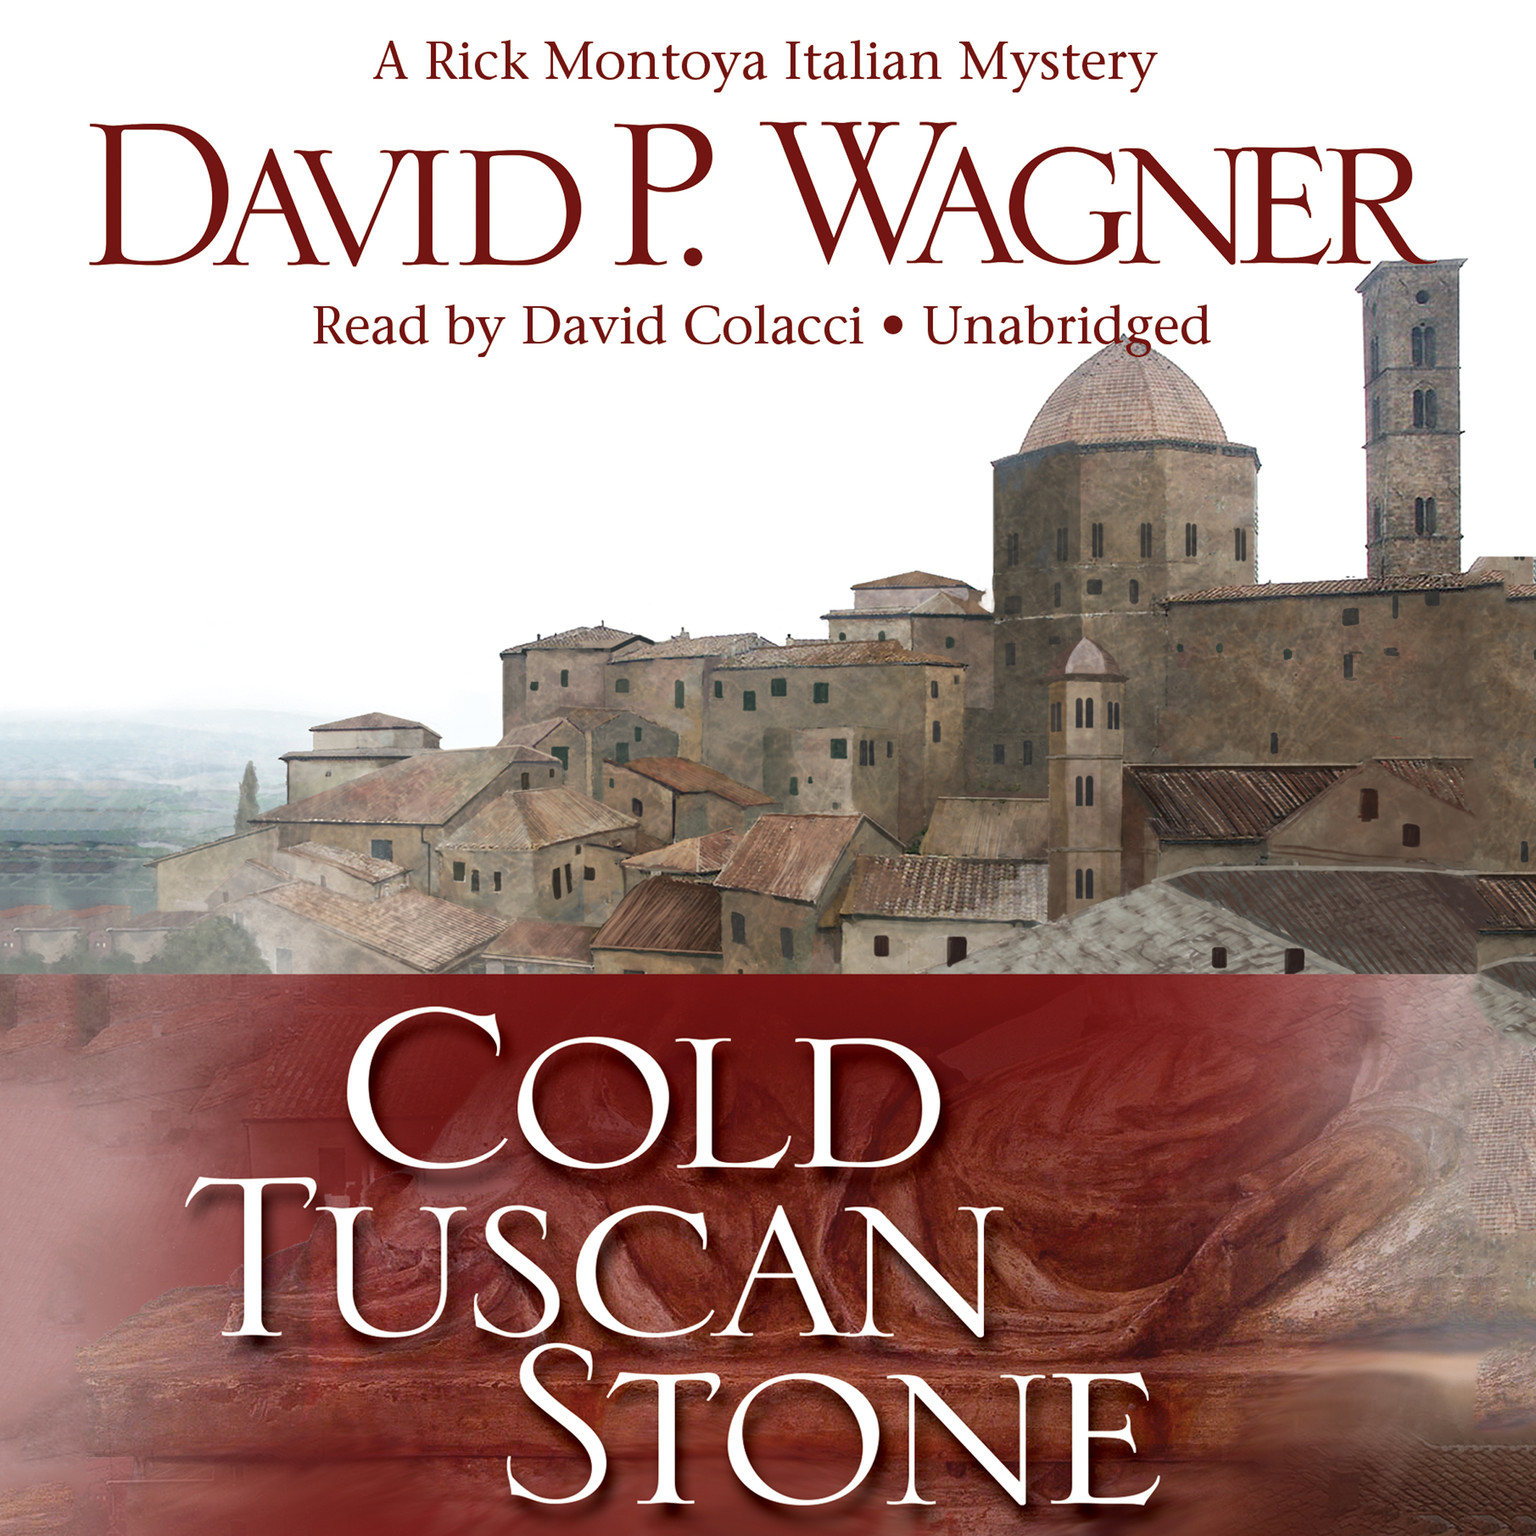 Printable Cold Tuscan Stone: A Rick Montoya Italian Mystery Audiobook Cover Art